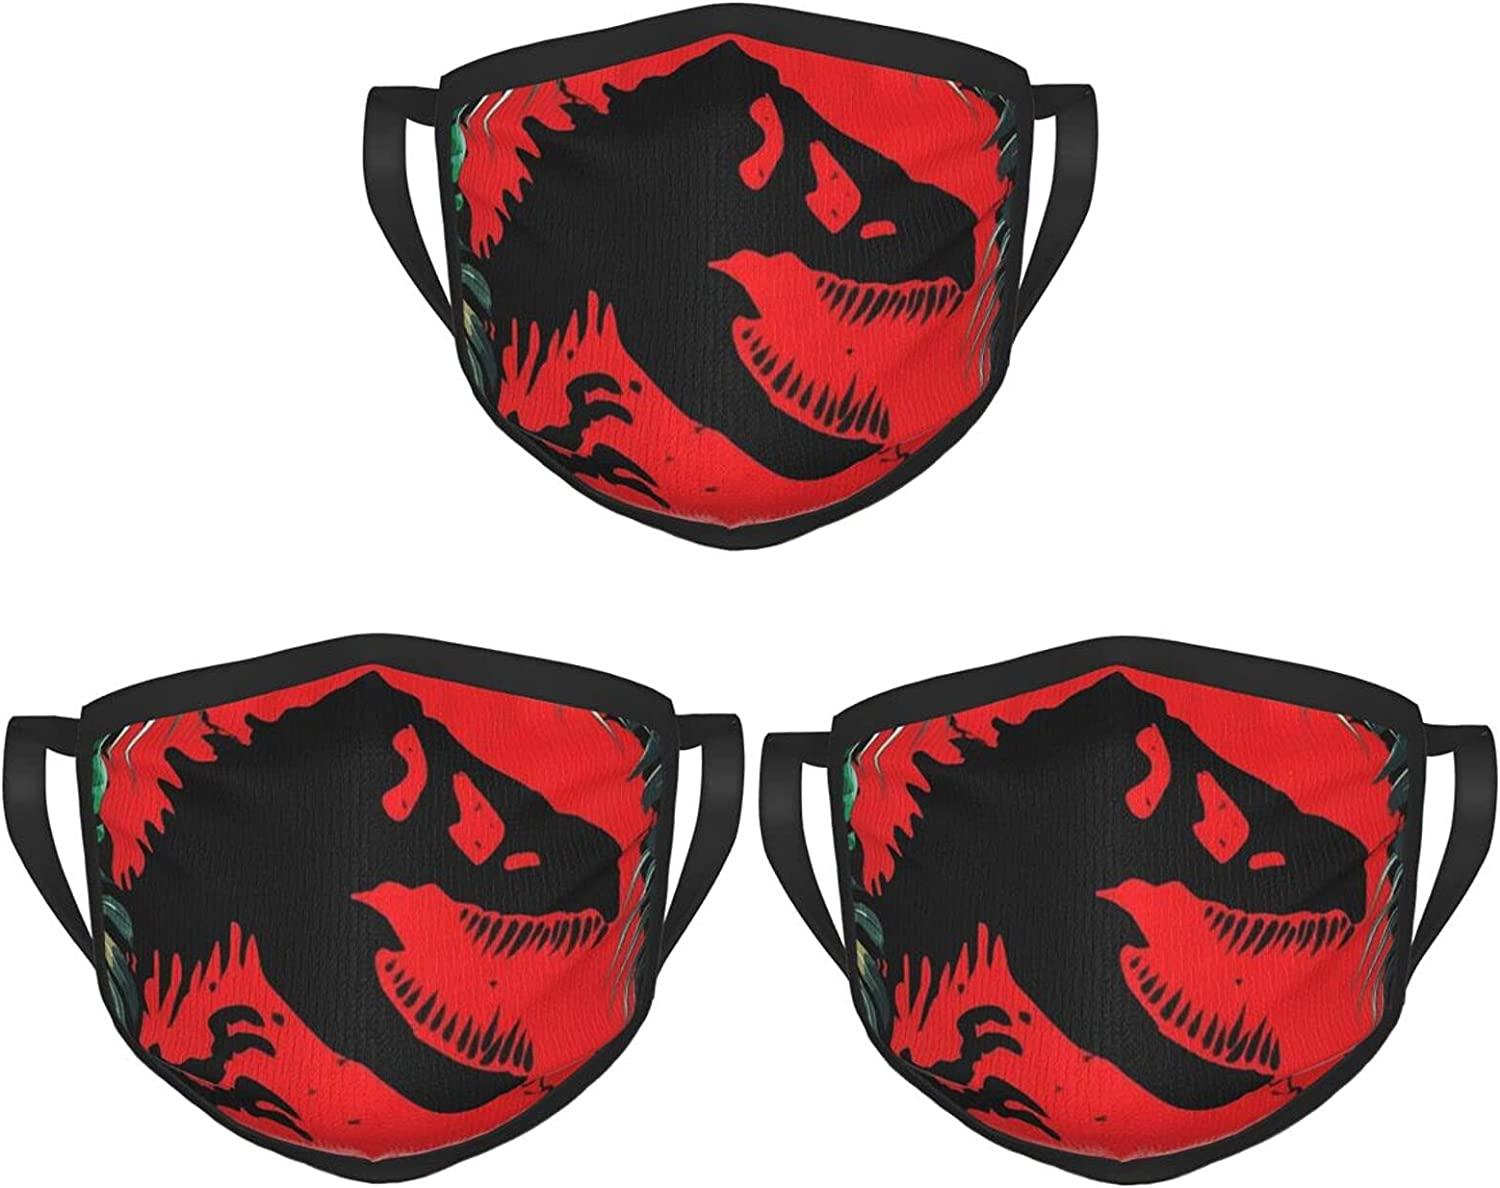 Balaclava Earmuffs Dinosaur Leaves Black Red Face Mouth Cover Mask Reusable Windproof Scarf Towel Cover Headwrap